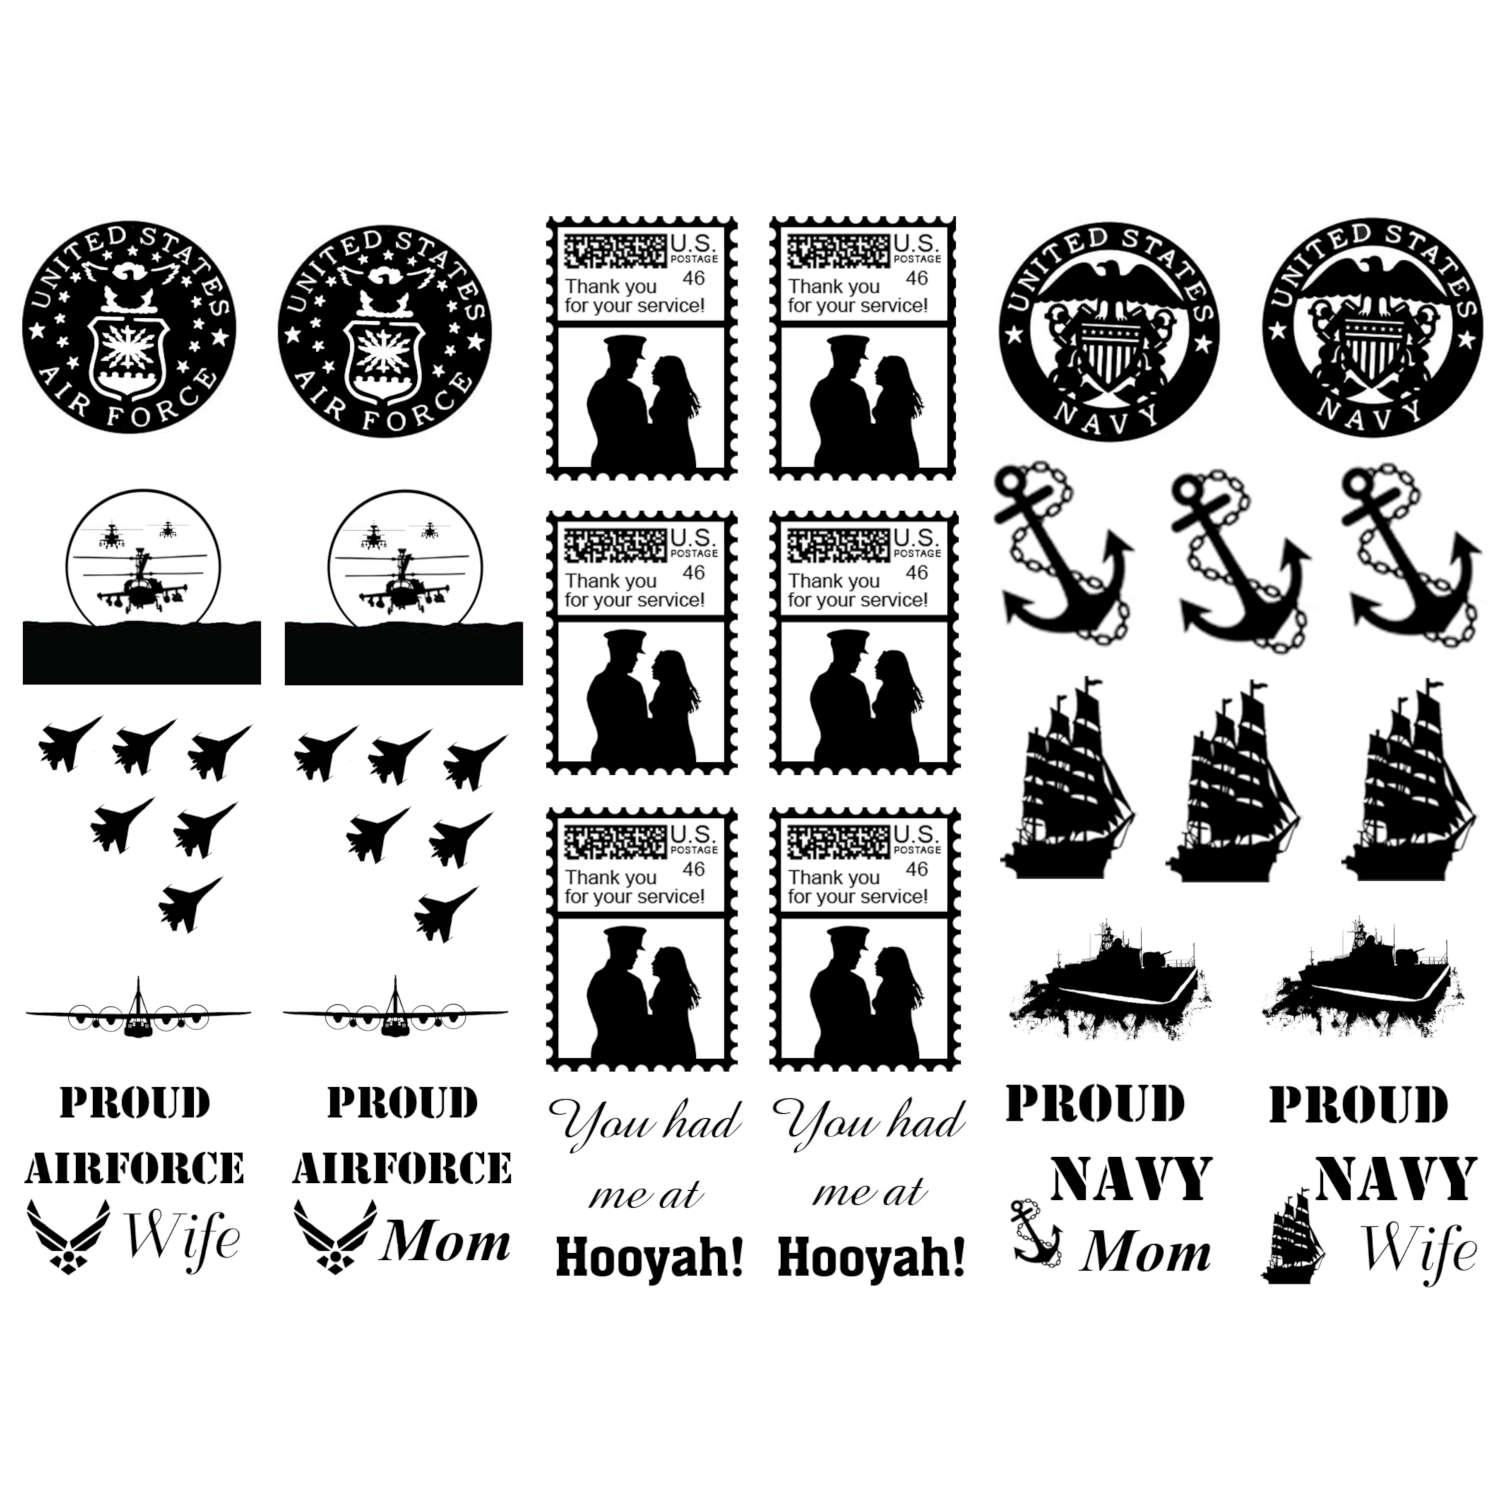 Airforce and Navy Black Enamel Decals